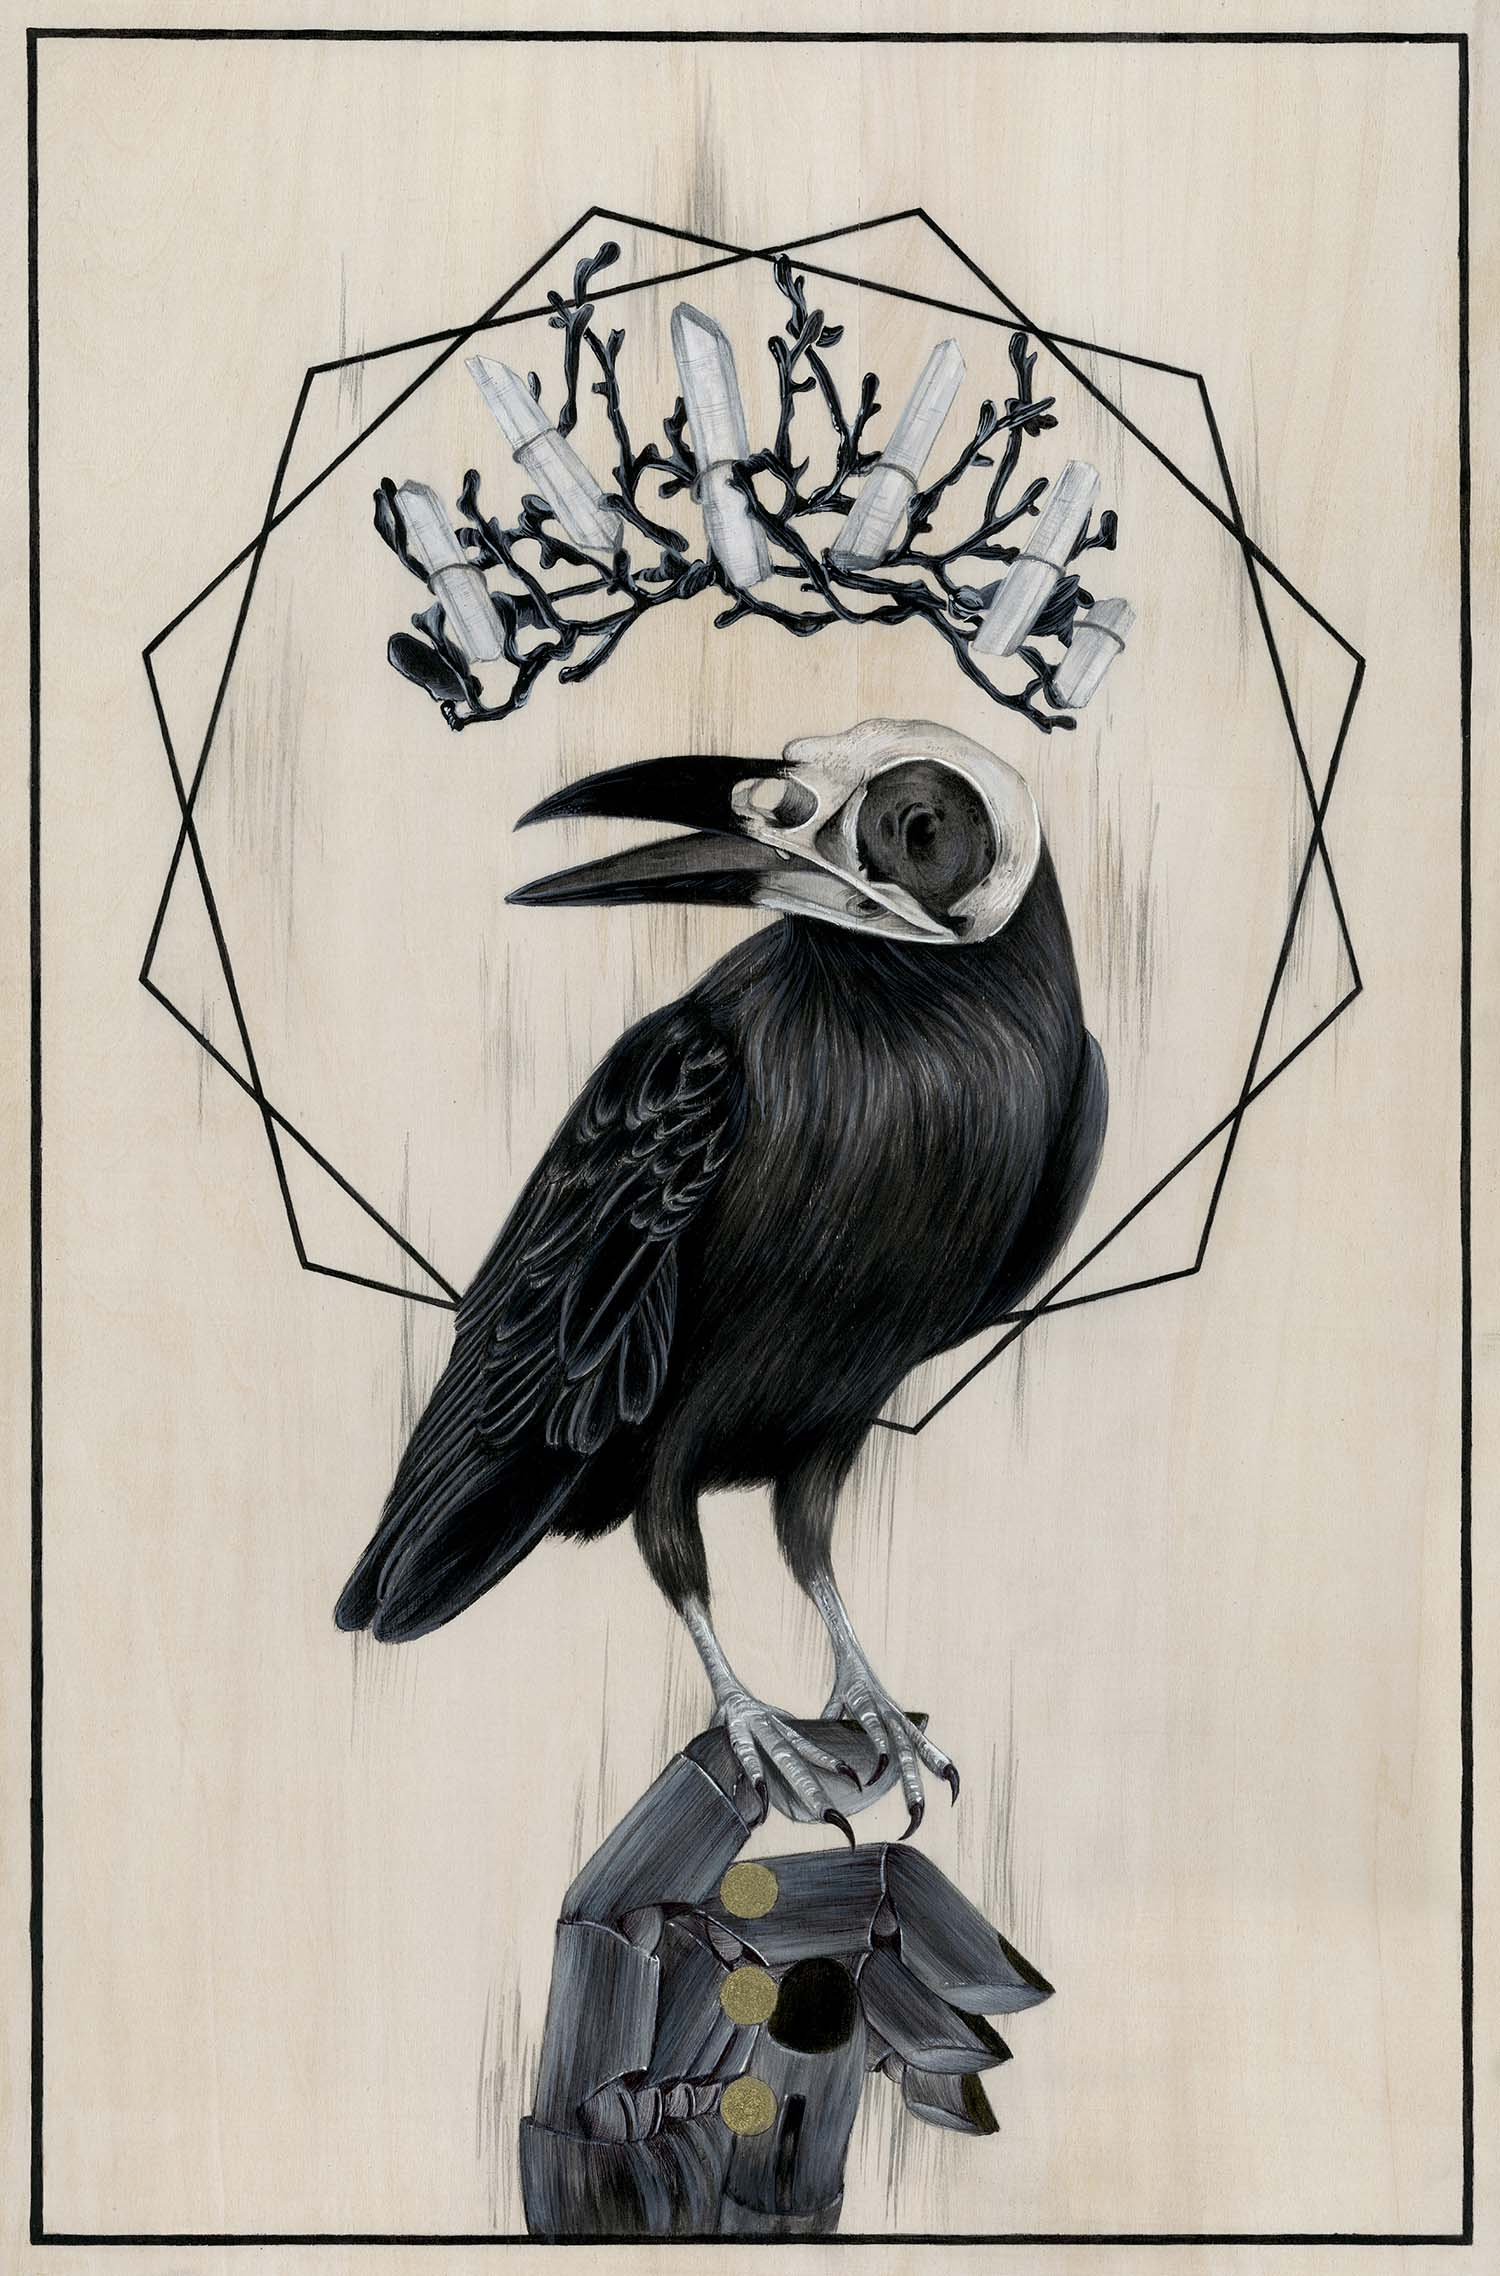 black and white occult painting of a bird